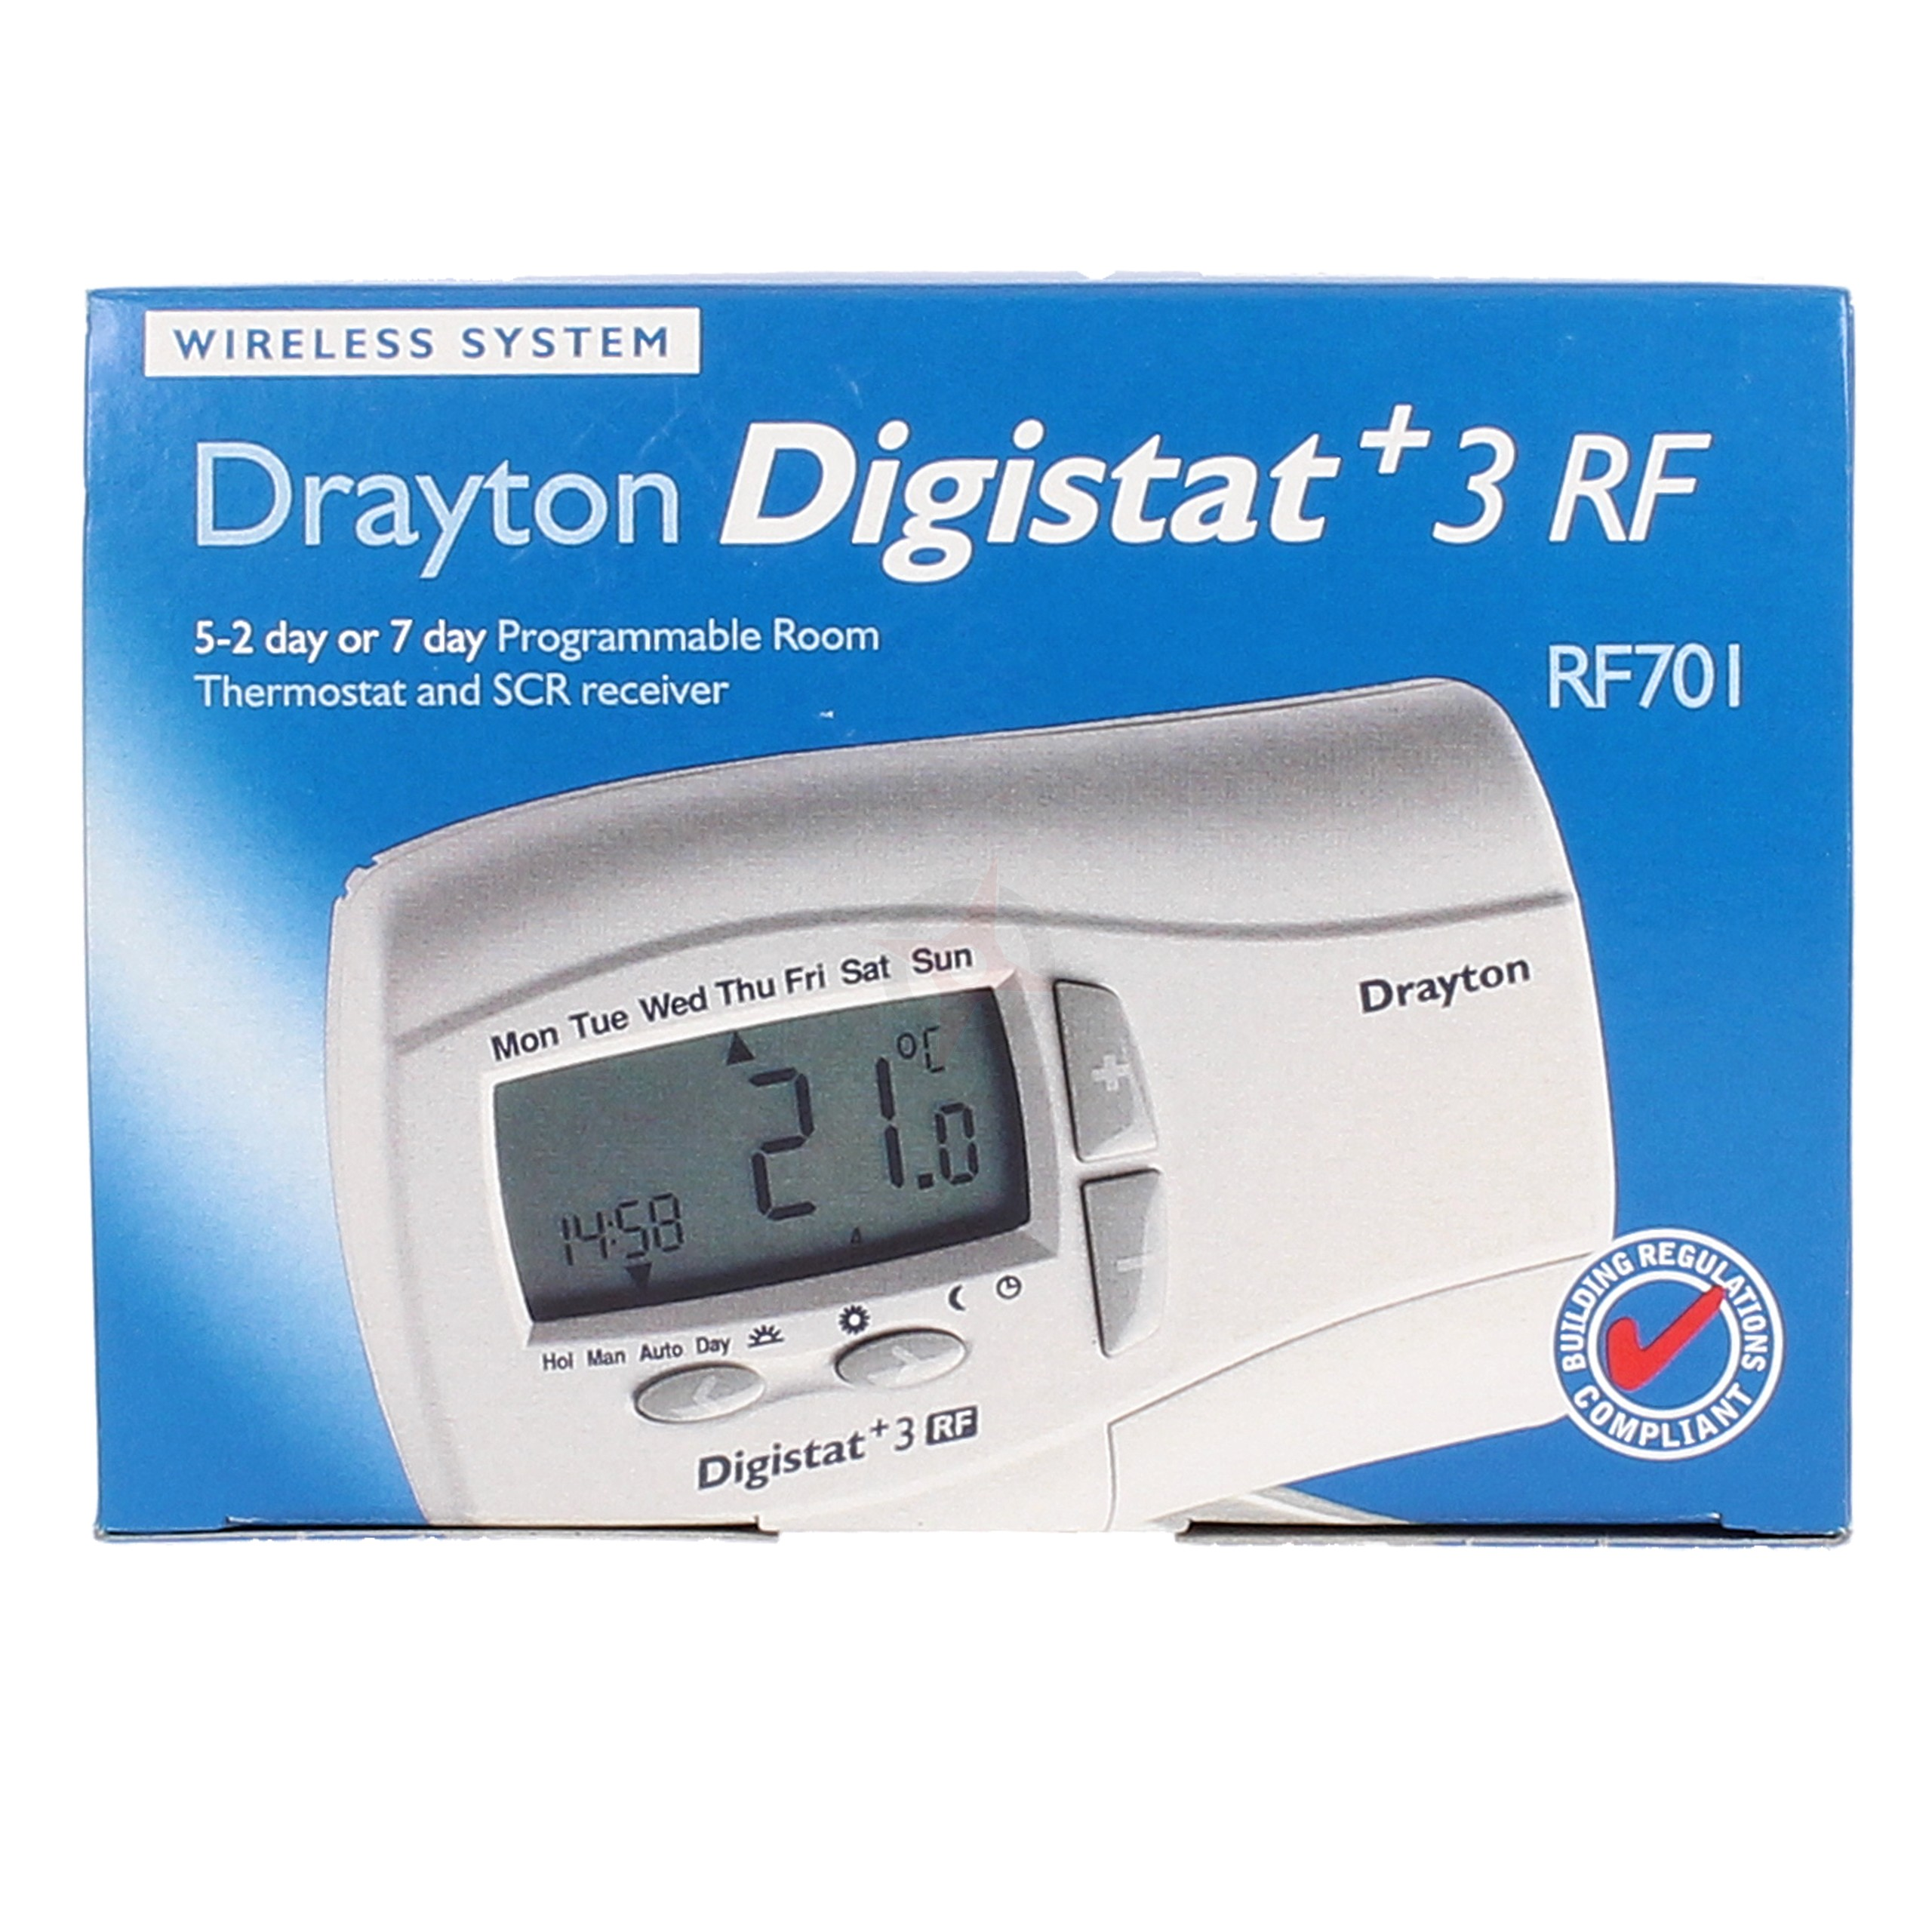 Drayton 5/2 Day or 7 Day Prog. Room Thermostat Digistat+3RF